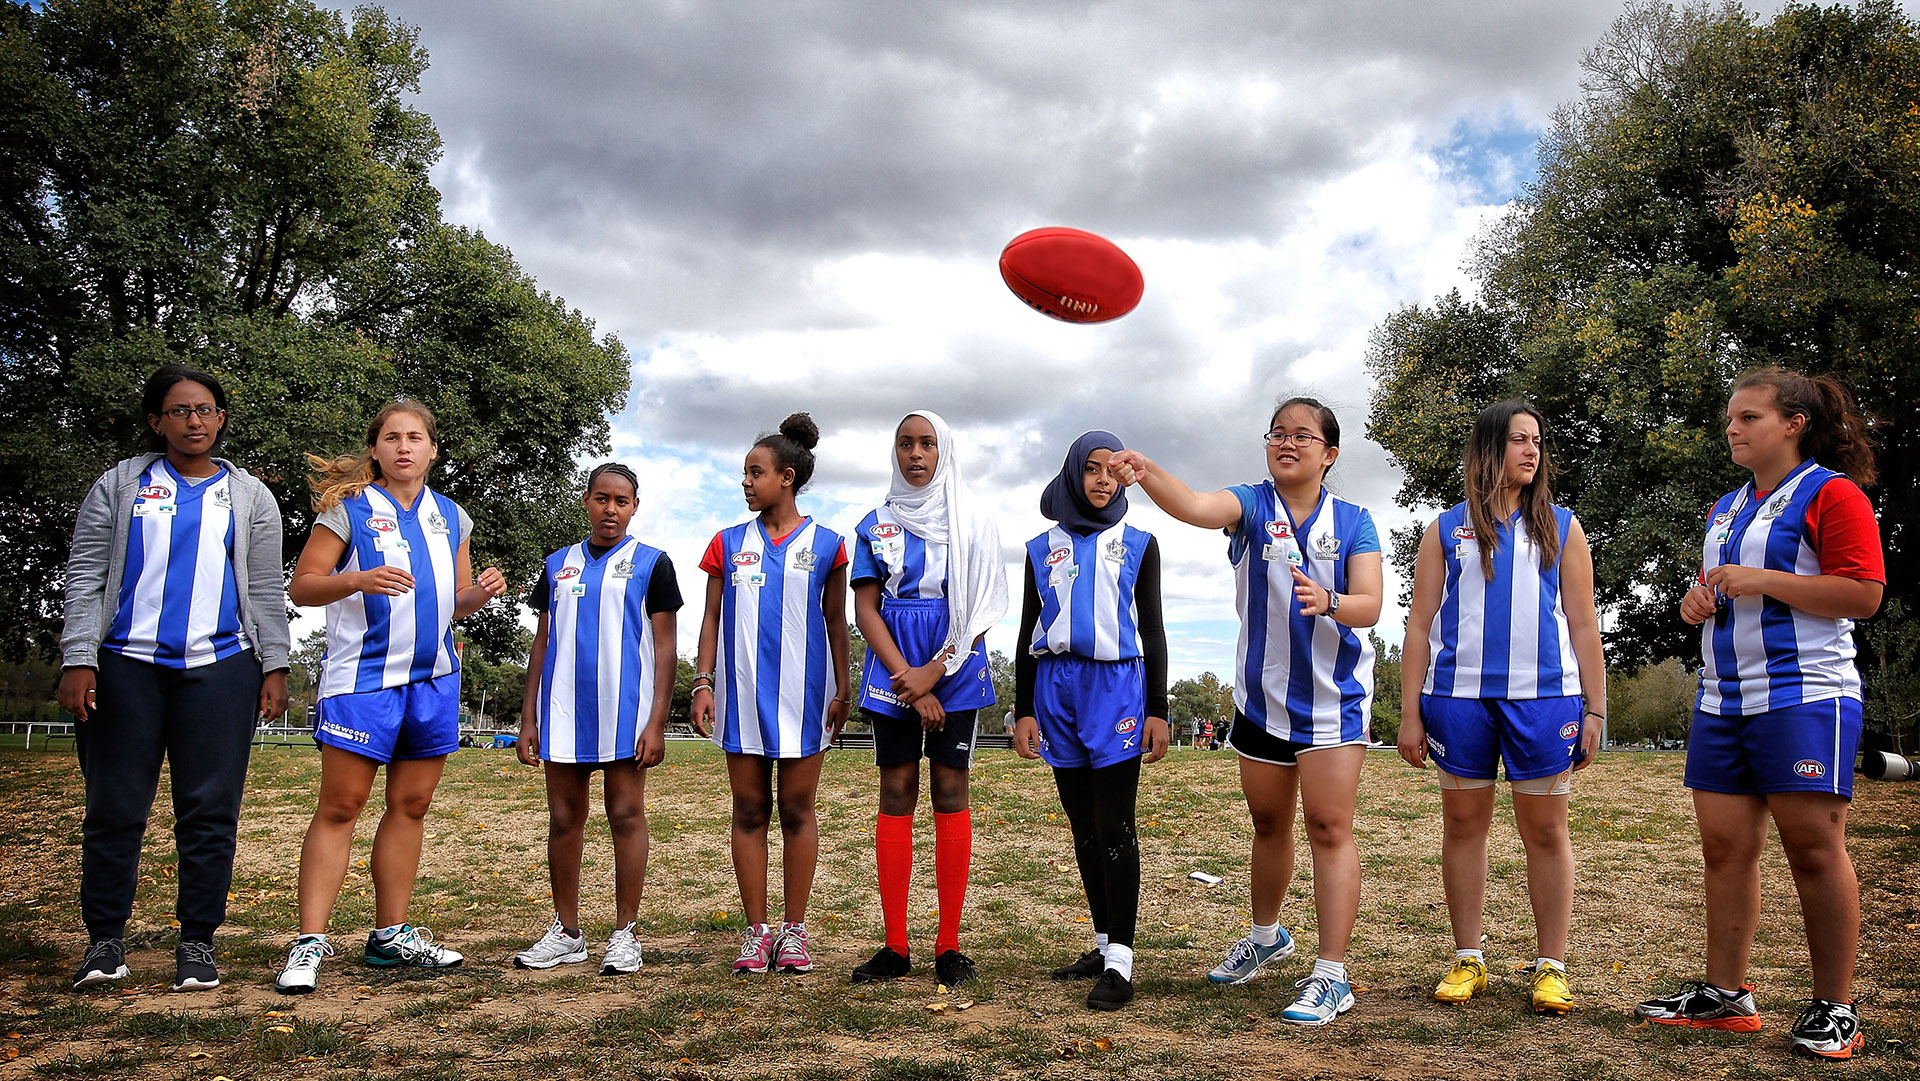 Players are seen prior to the round robin matches during the annual Unity Cup an AFL Multicultural Program at JJ Holland Park, Melbourne on March 16, 2014. (Photo: Andrew White/AFL Media)